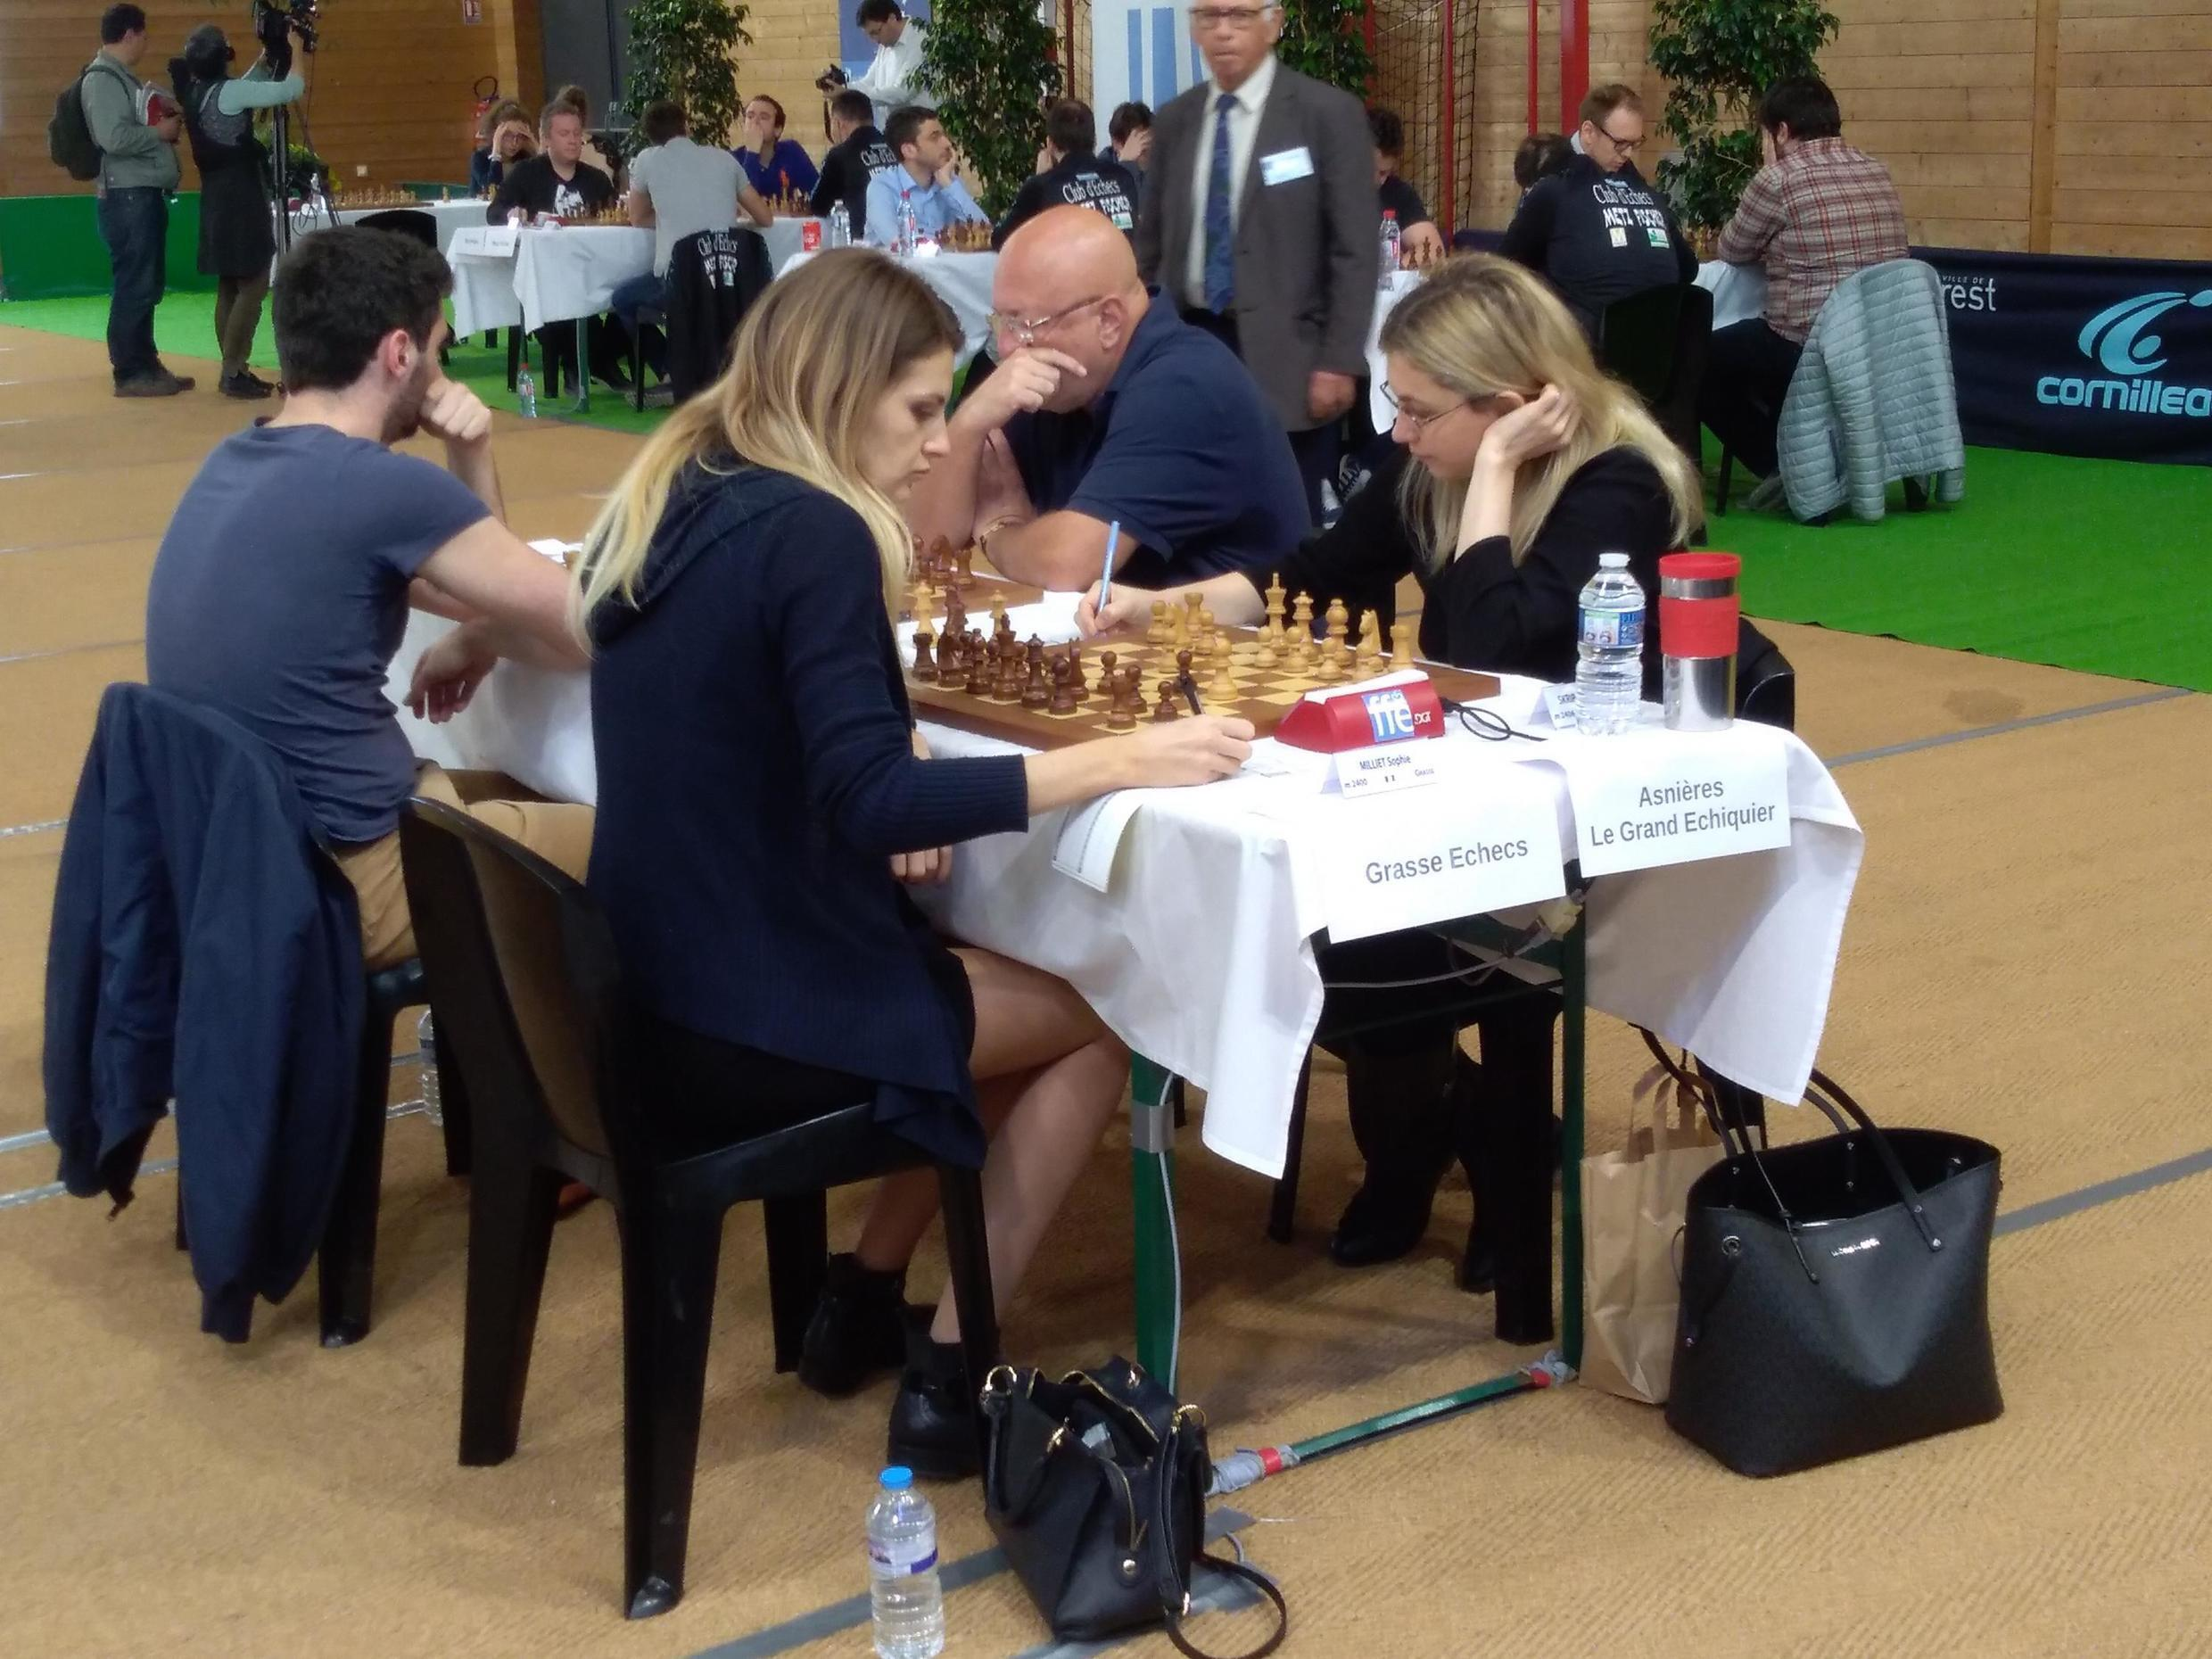 Top Twelve club chess tournament in Brest, France